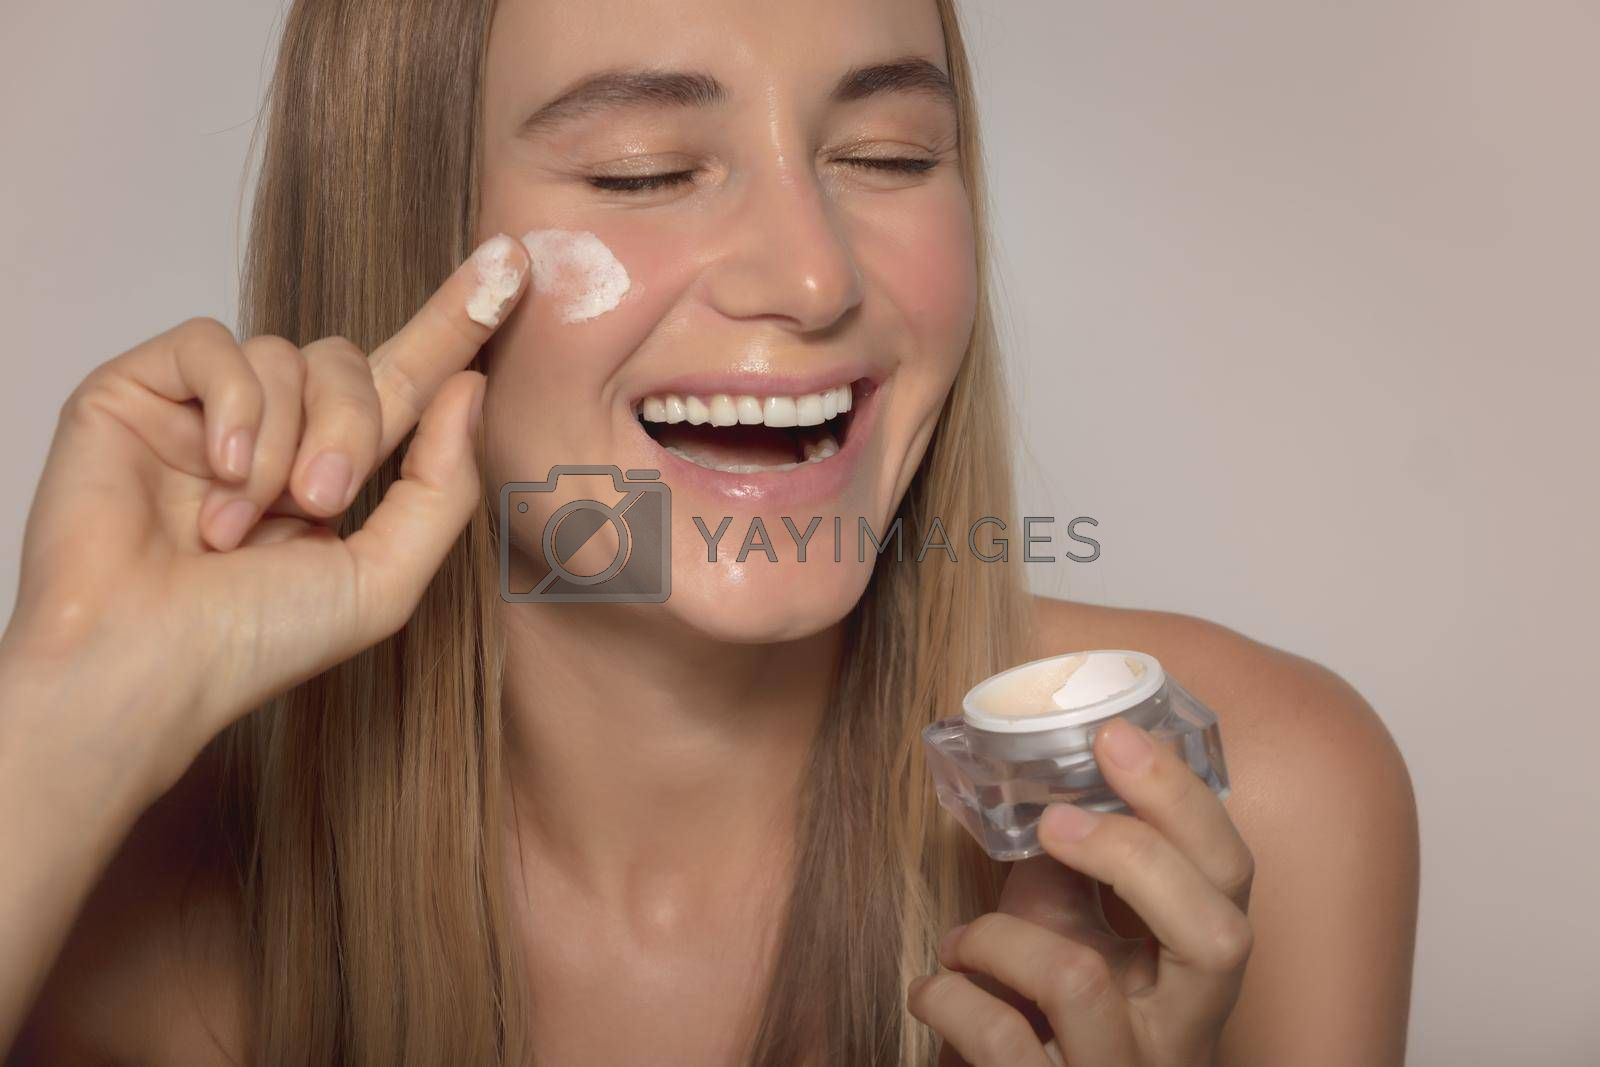 Portrait of a Nice Smiling Girl Laughing and Applying Facial Moisturizer Cream Isolated on Beige Background. Natural Cosmetics. Healthy Lifestyle. Beauty and Skin Care.